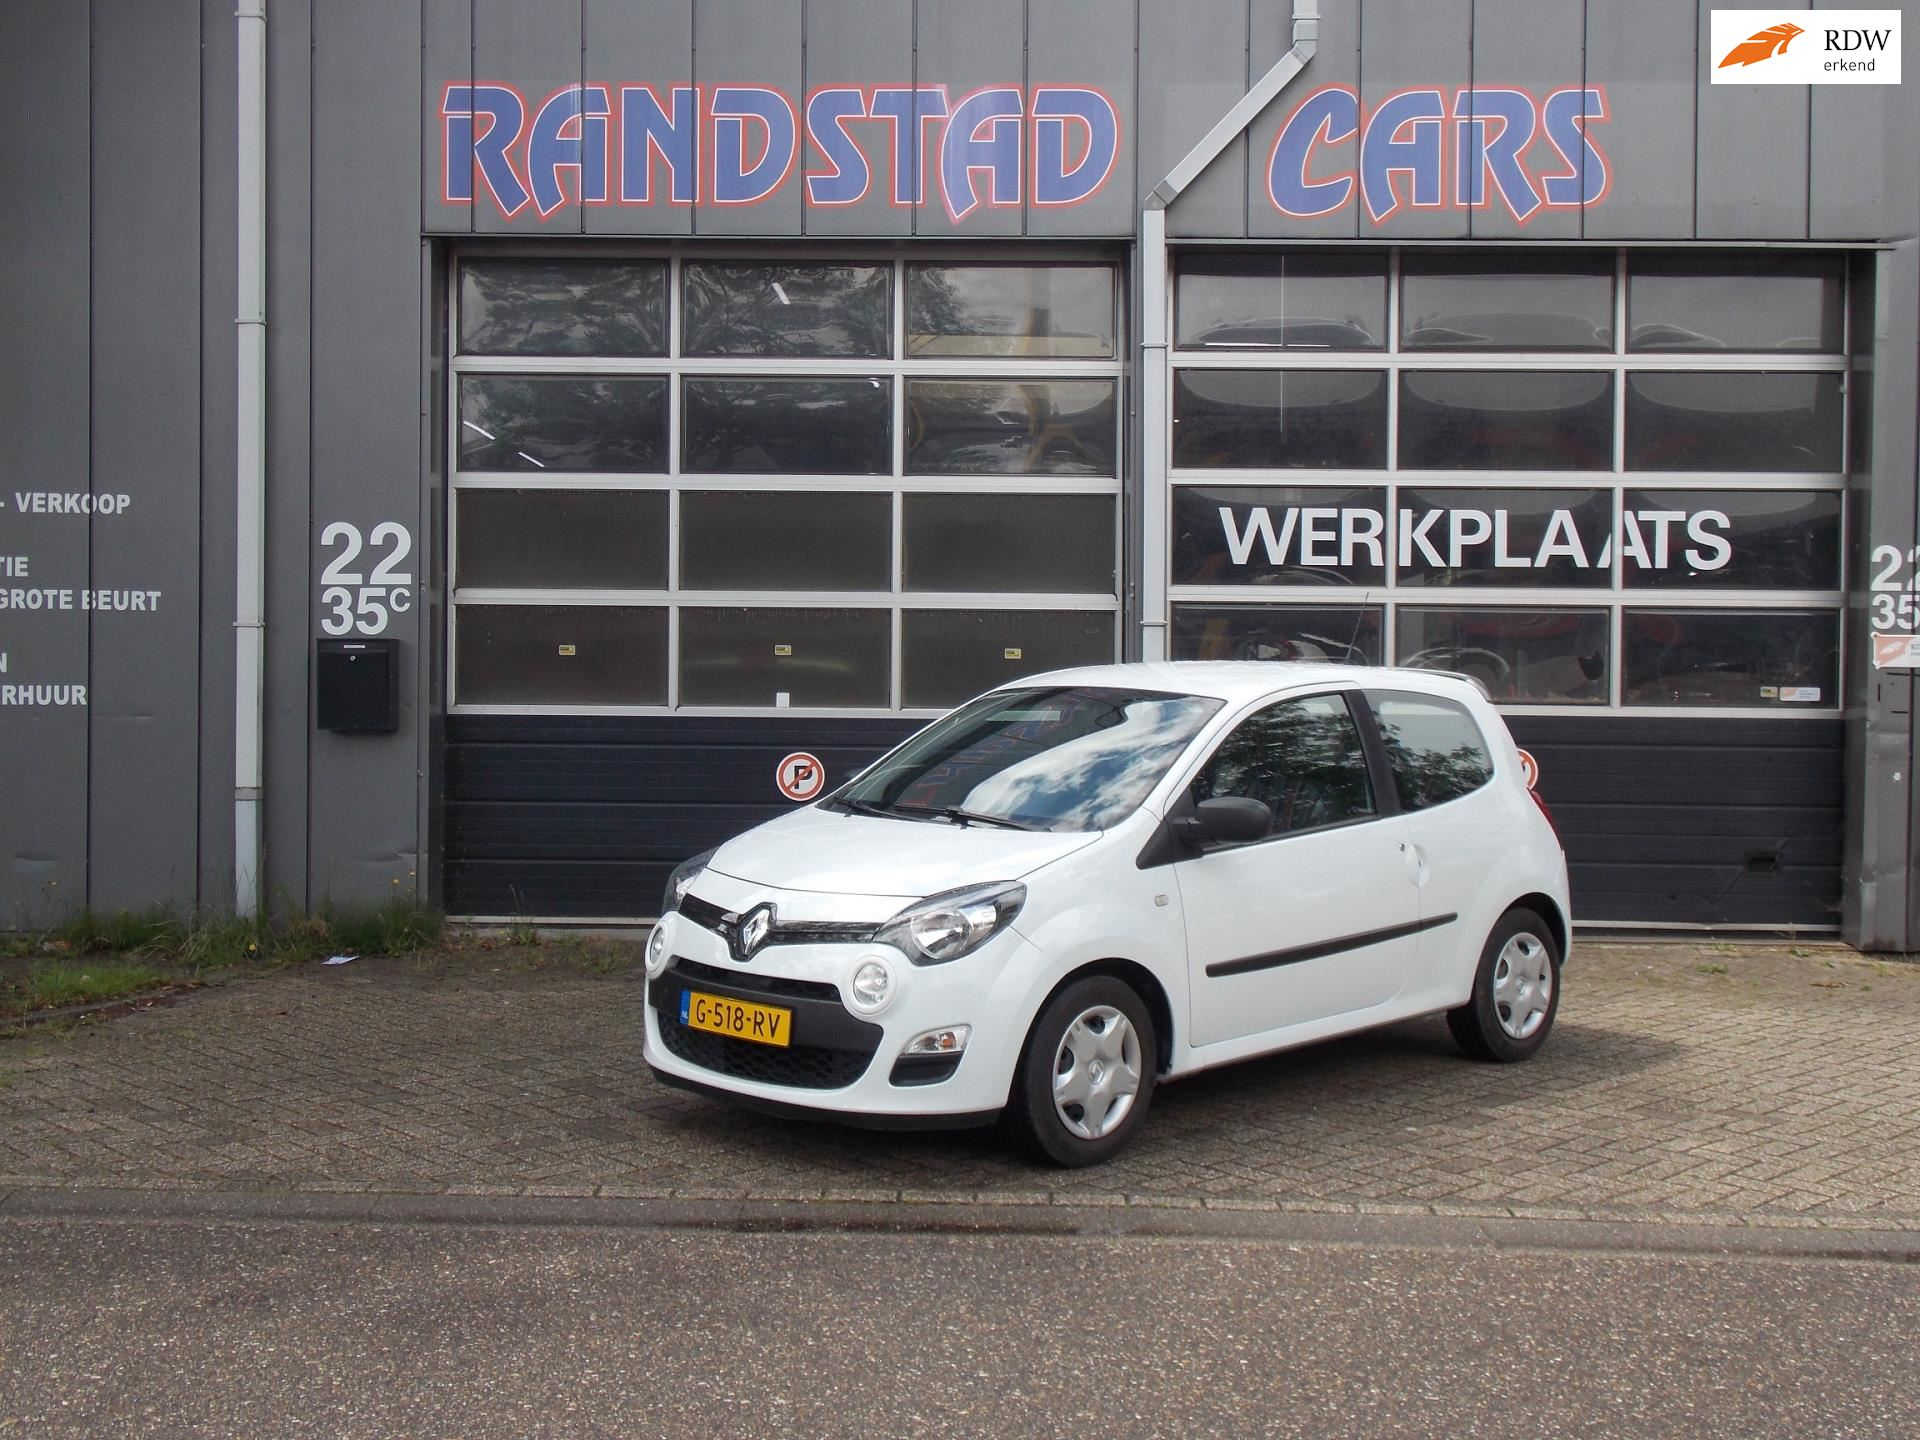 Renault Twingo occasion - Randstad Cars